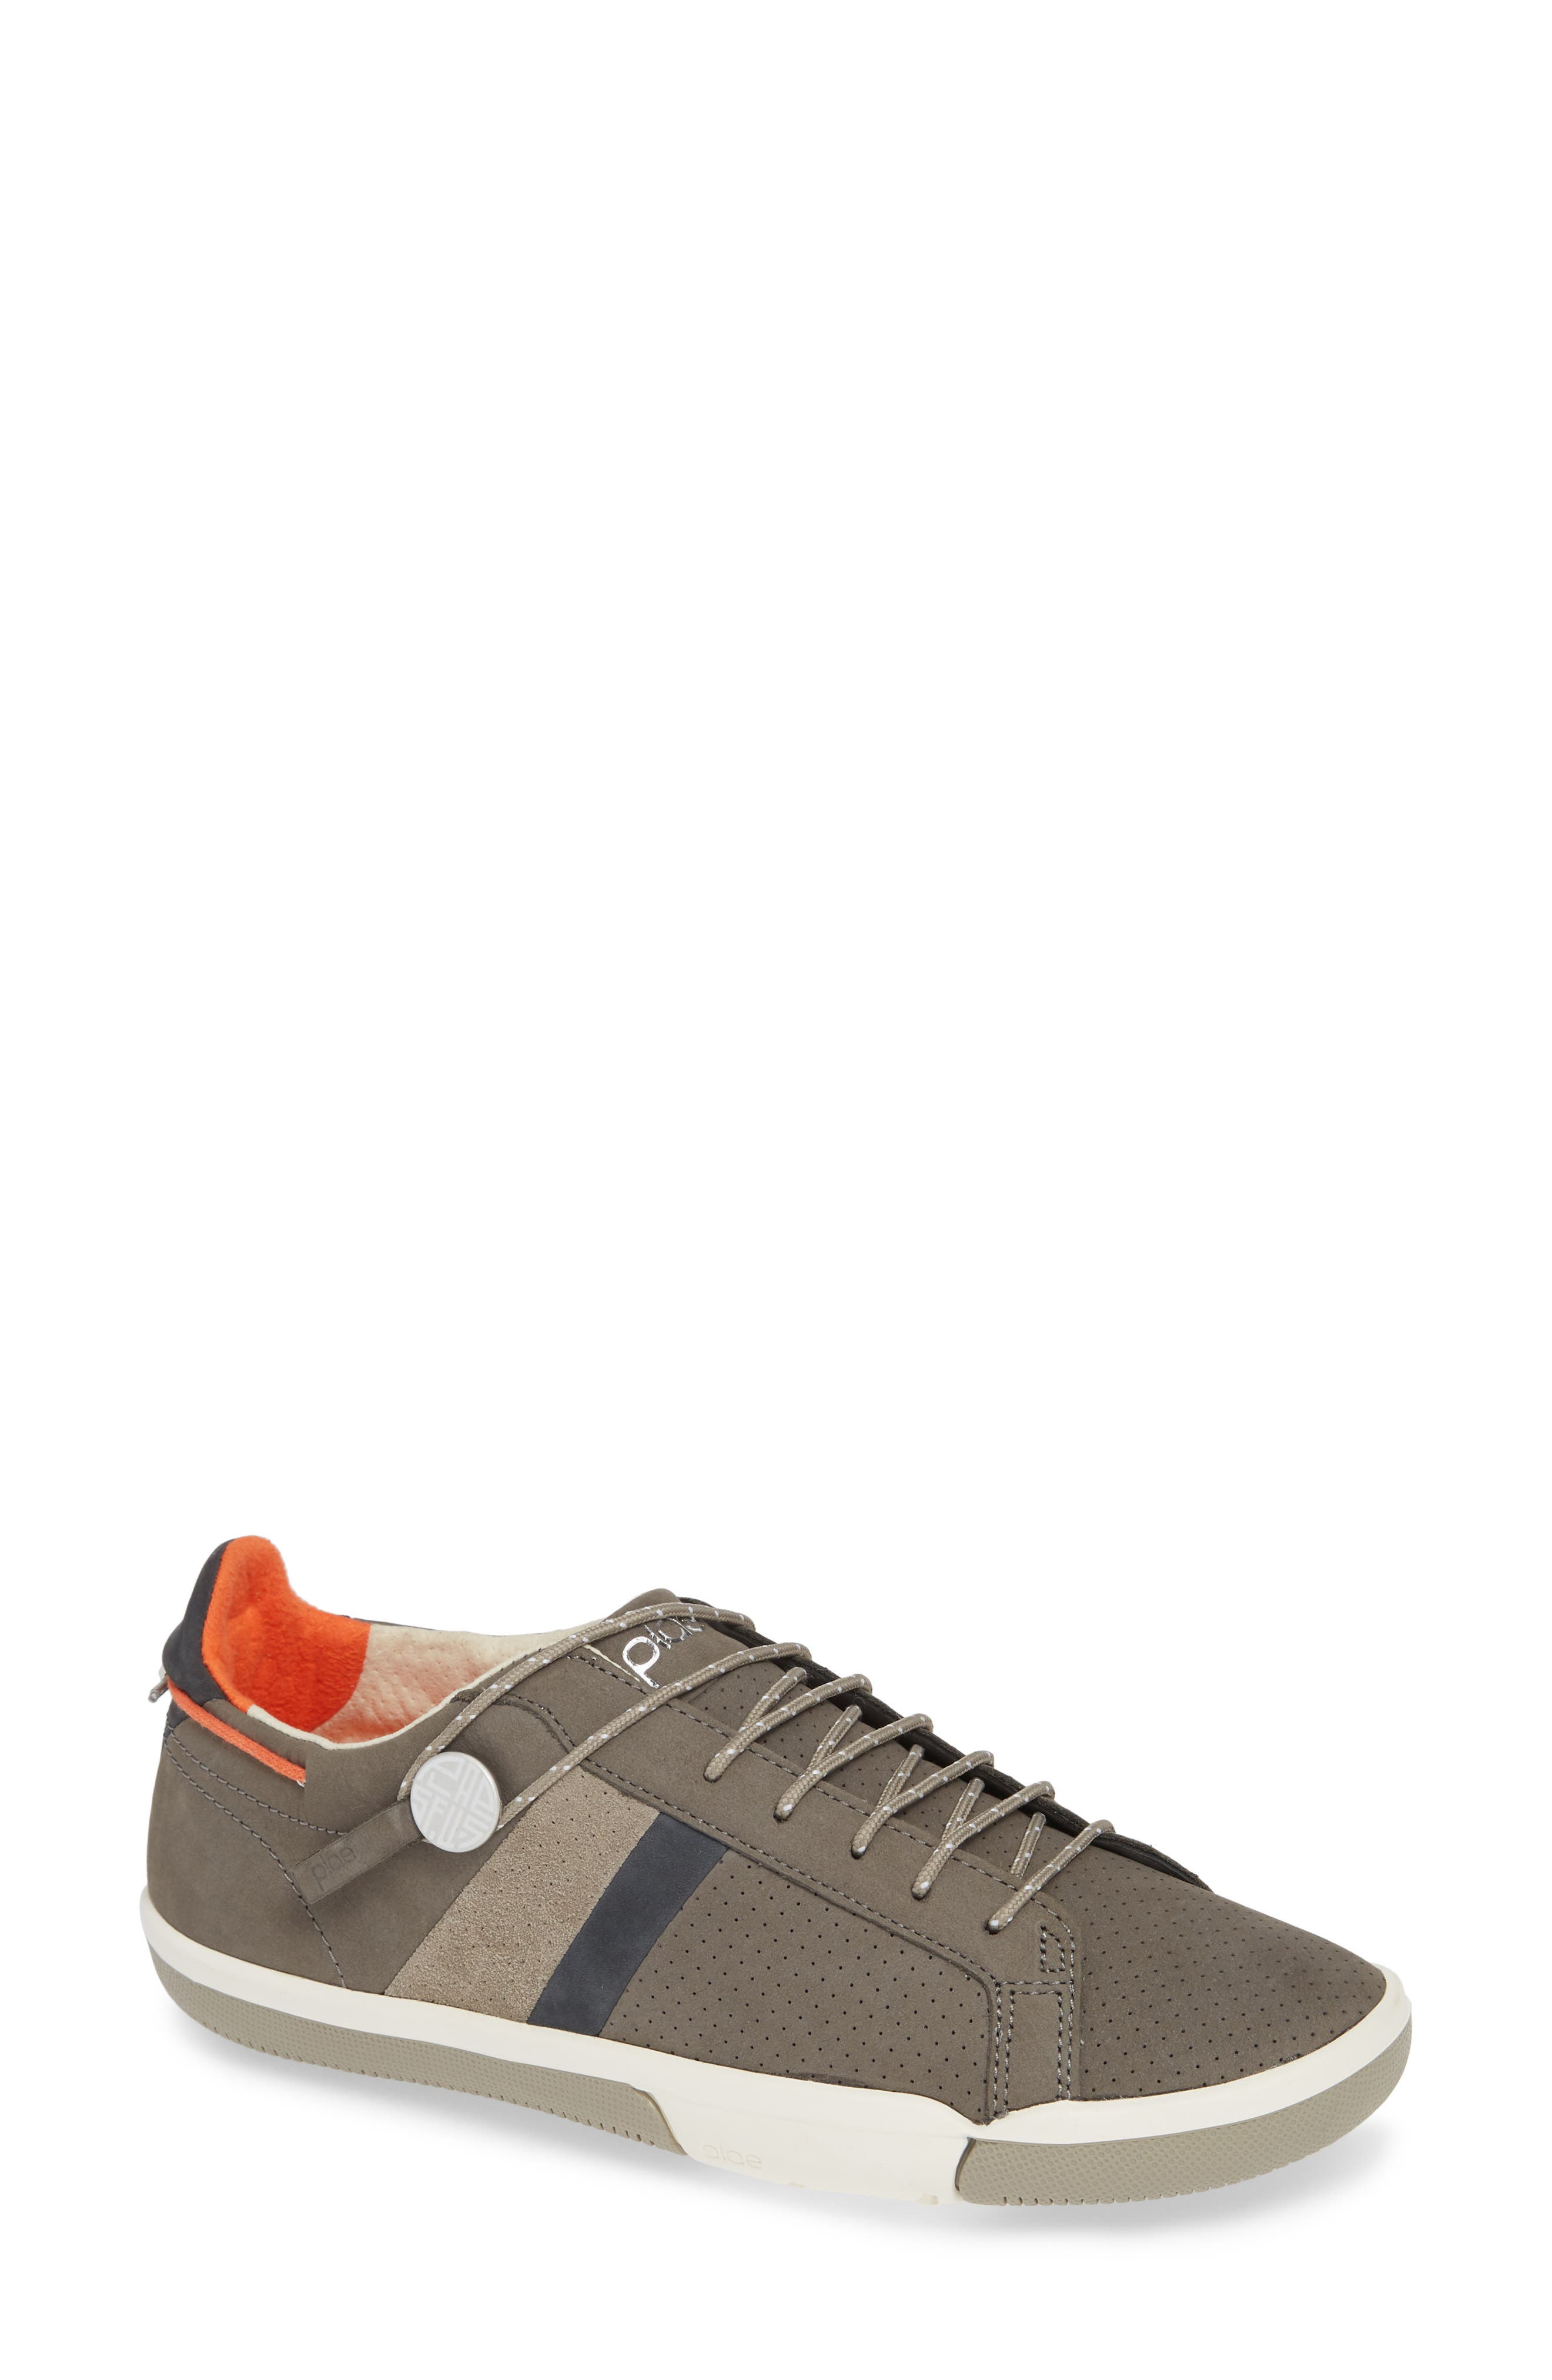 Mulberry Sneaker,                         Main,                         color, GREY NUBUCK LEATHER